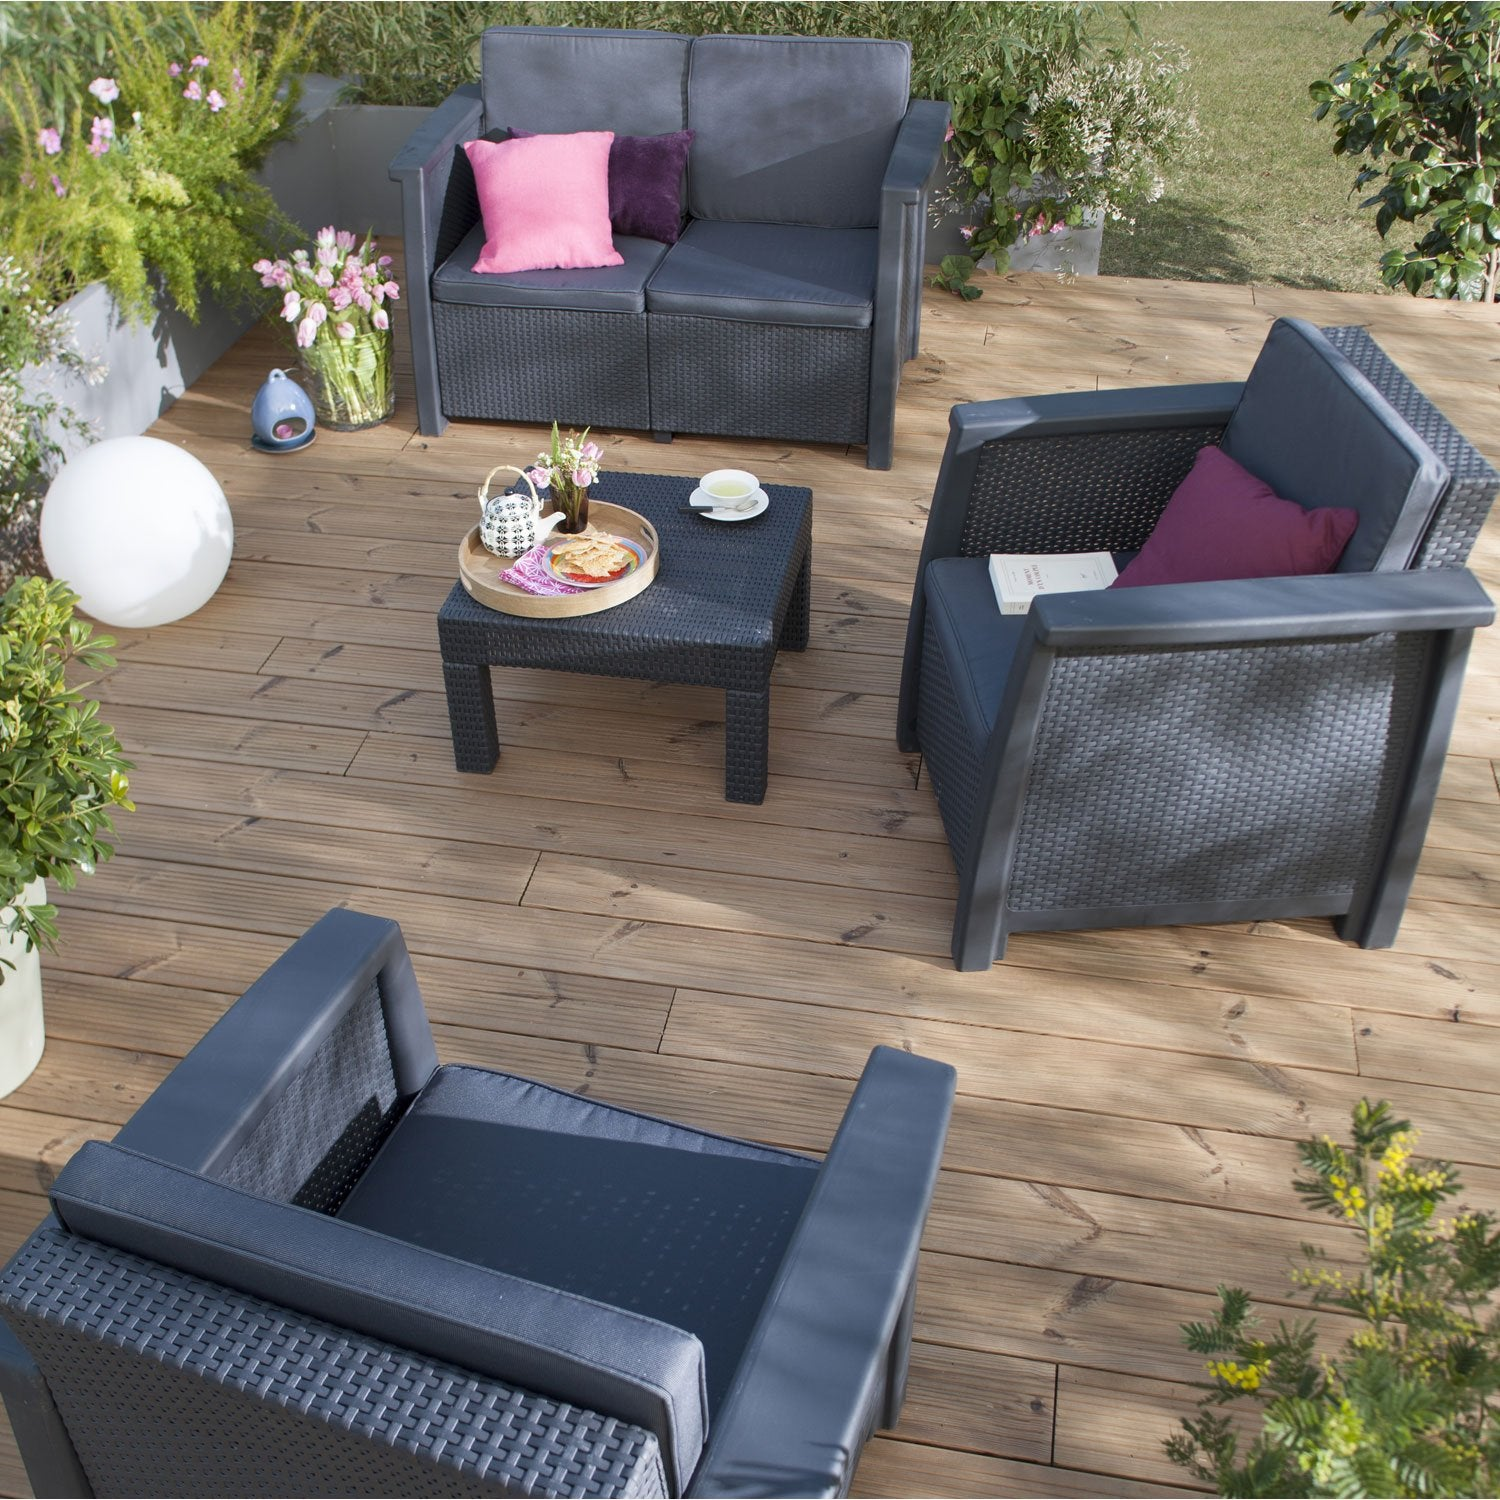 Leroy merlin salon de jardin en r sine tress e fashion for Leroy merlin sofas jardin